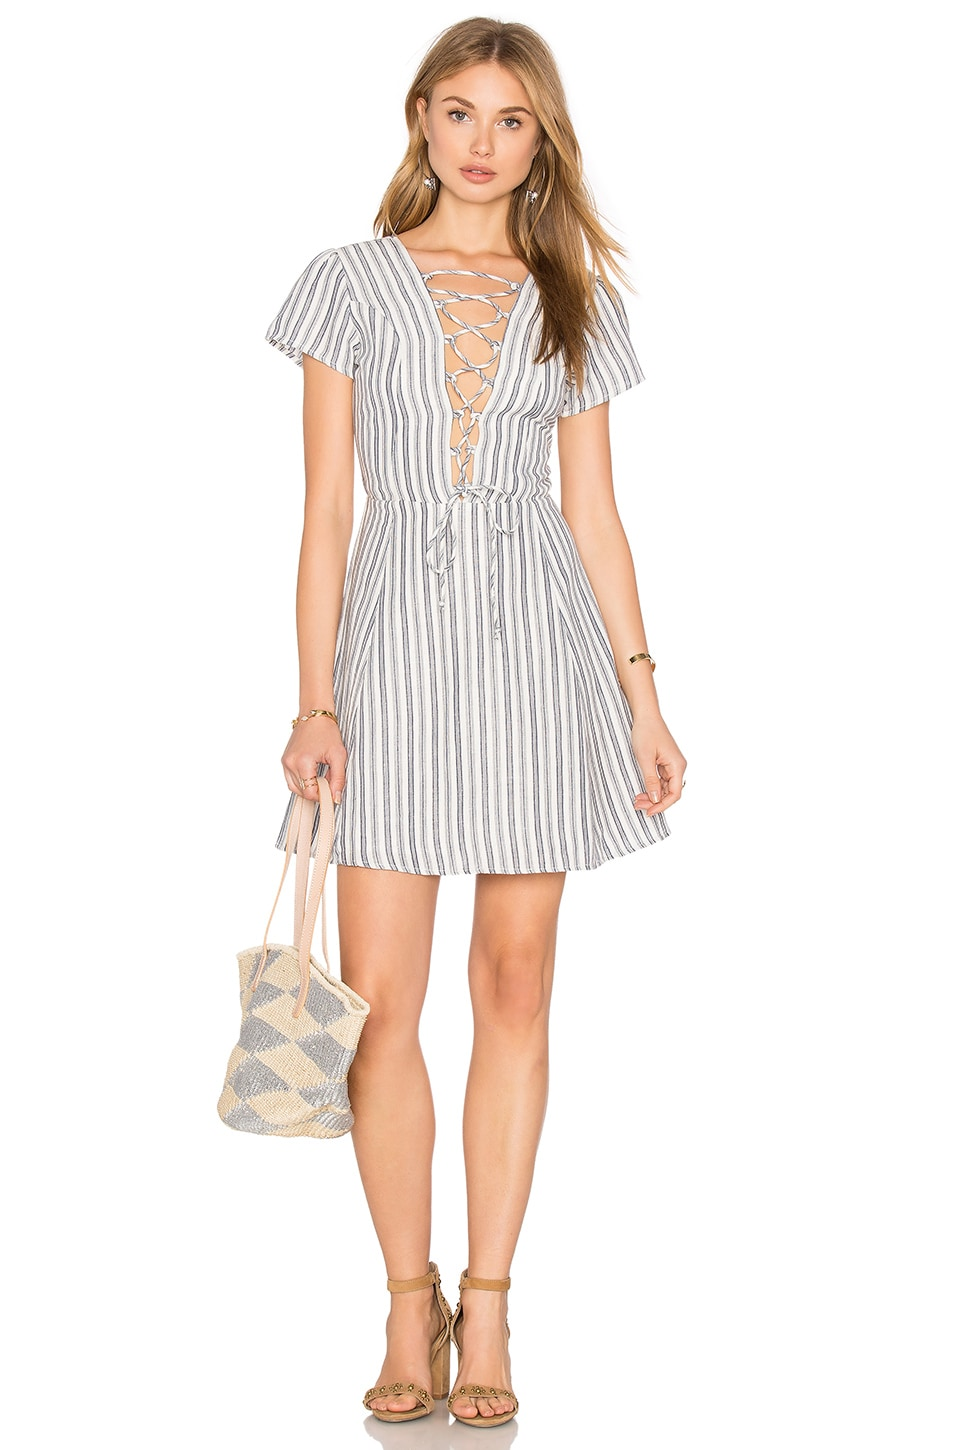 Privacy Please Phillips Dress in Navy Stripe